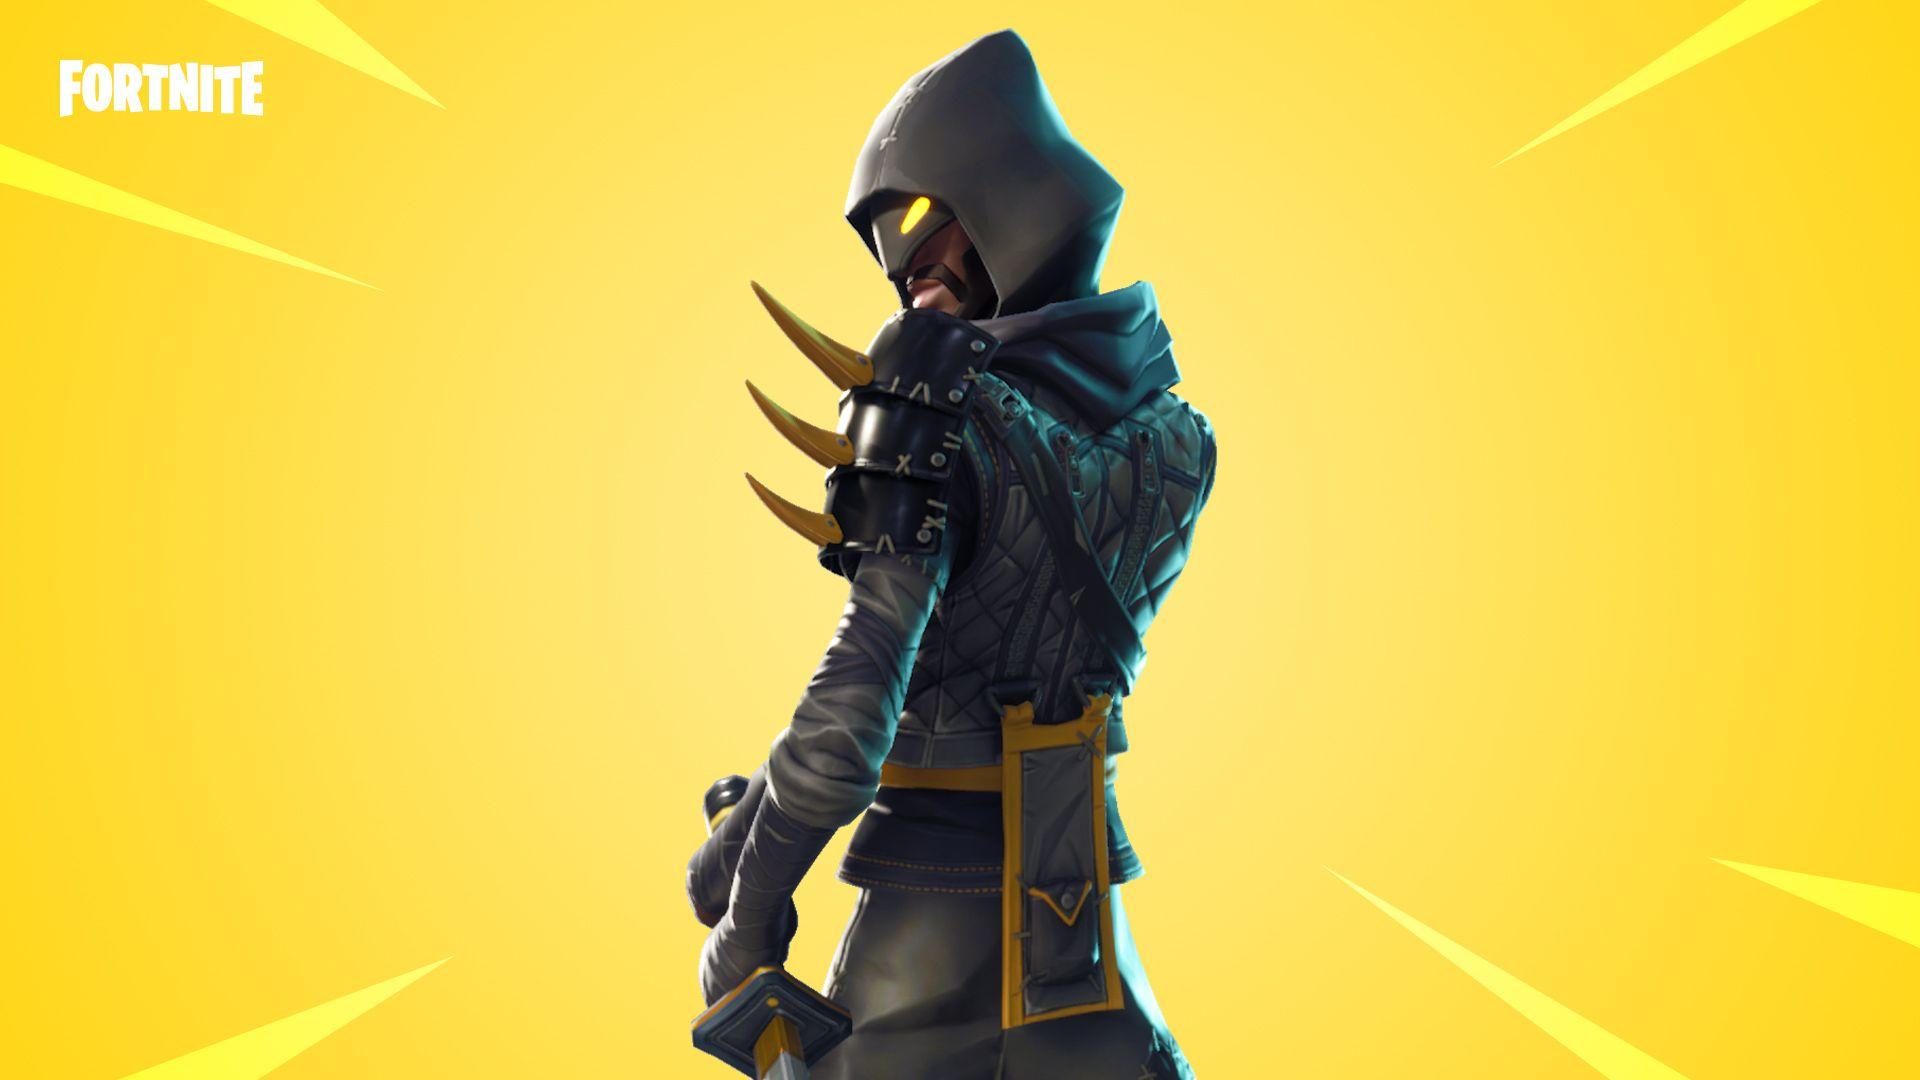 v4.4 Brings New 'Cloaked Star' Mission, Hero, and Miriad Weapon/Item